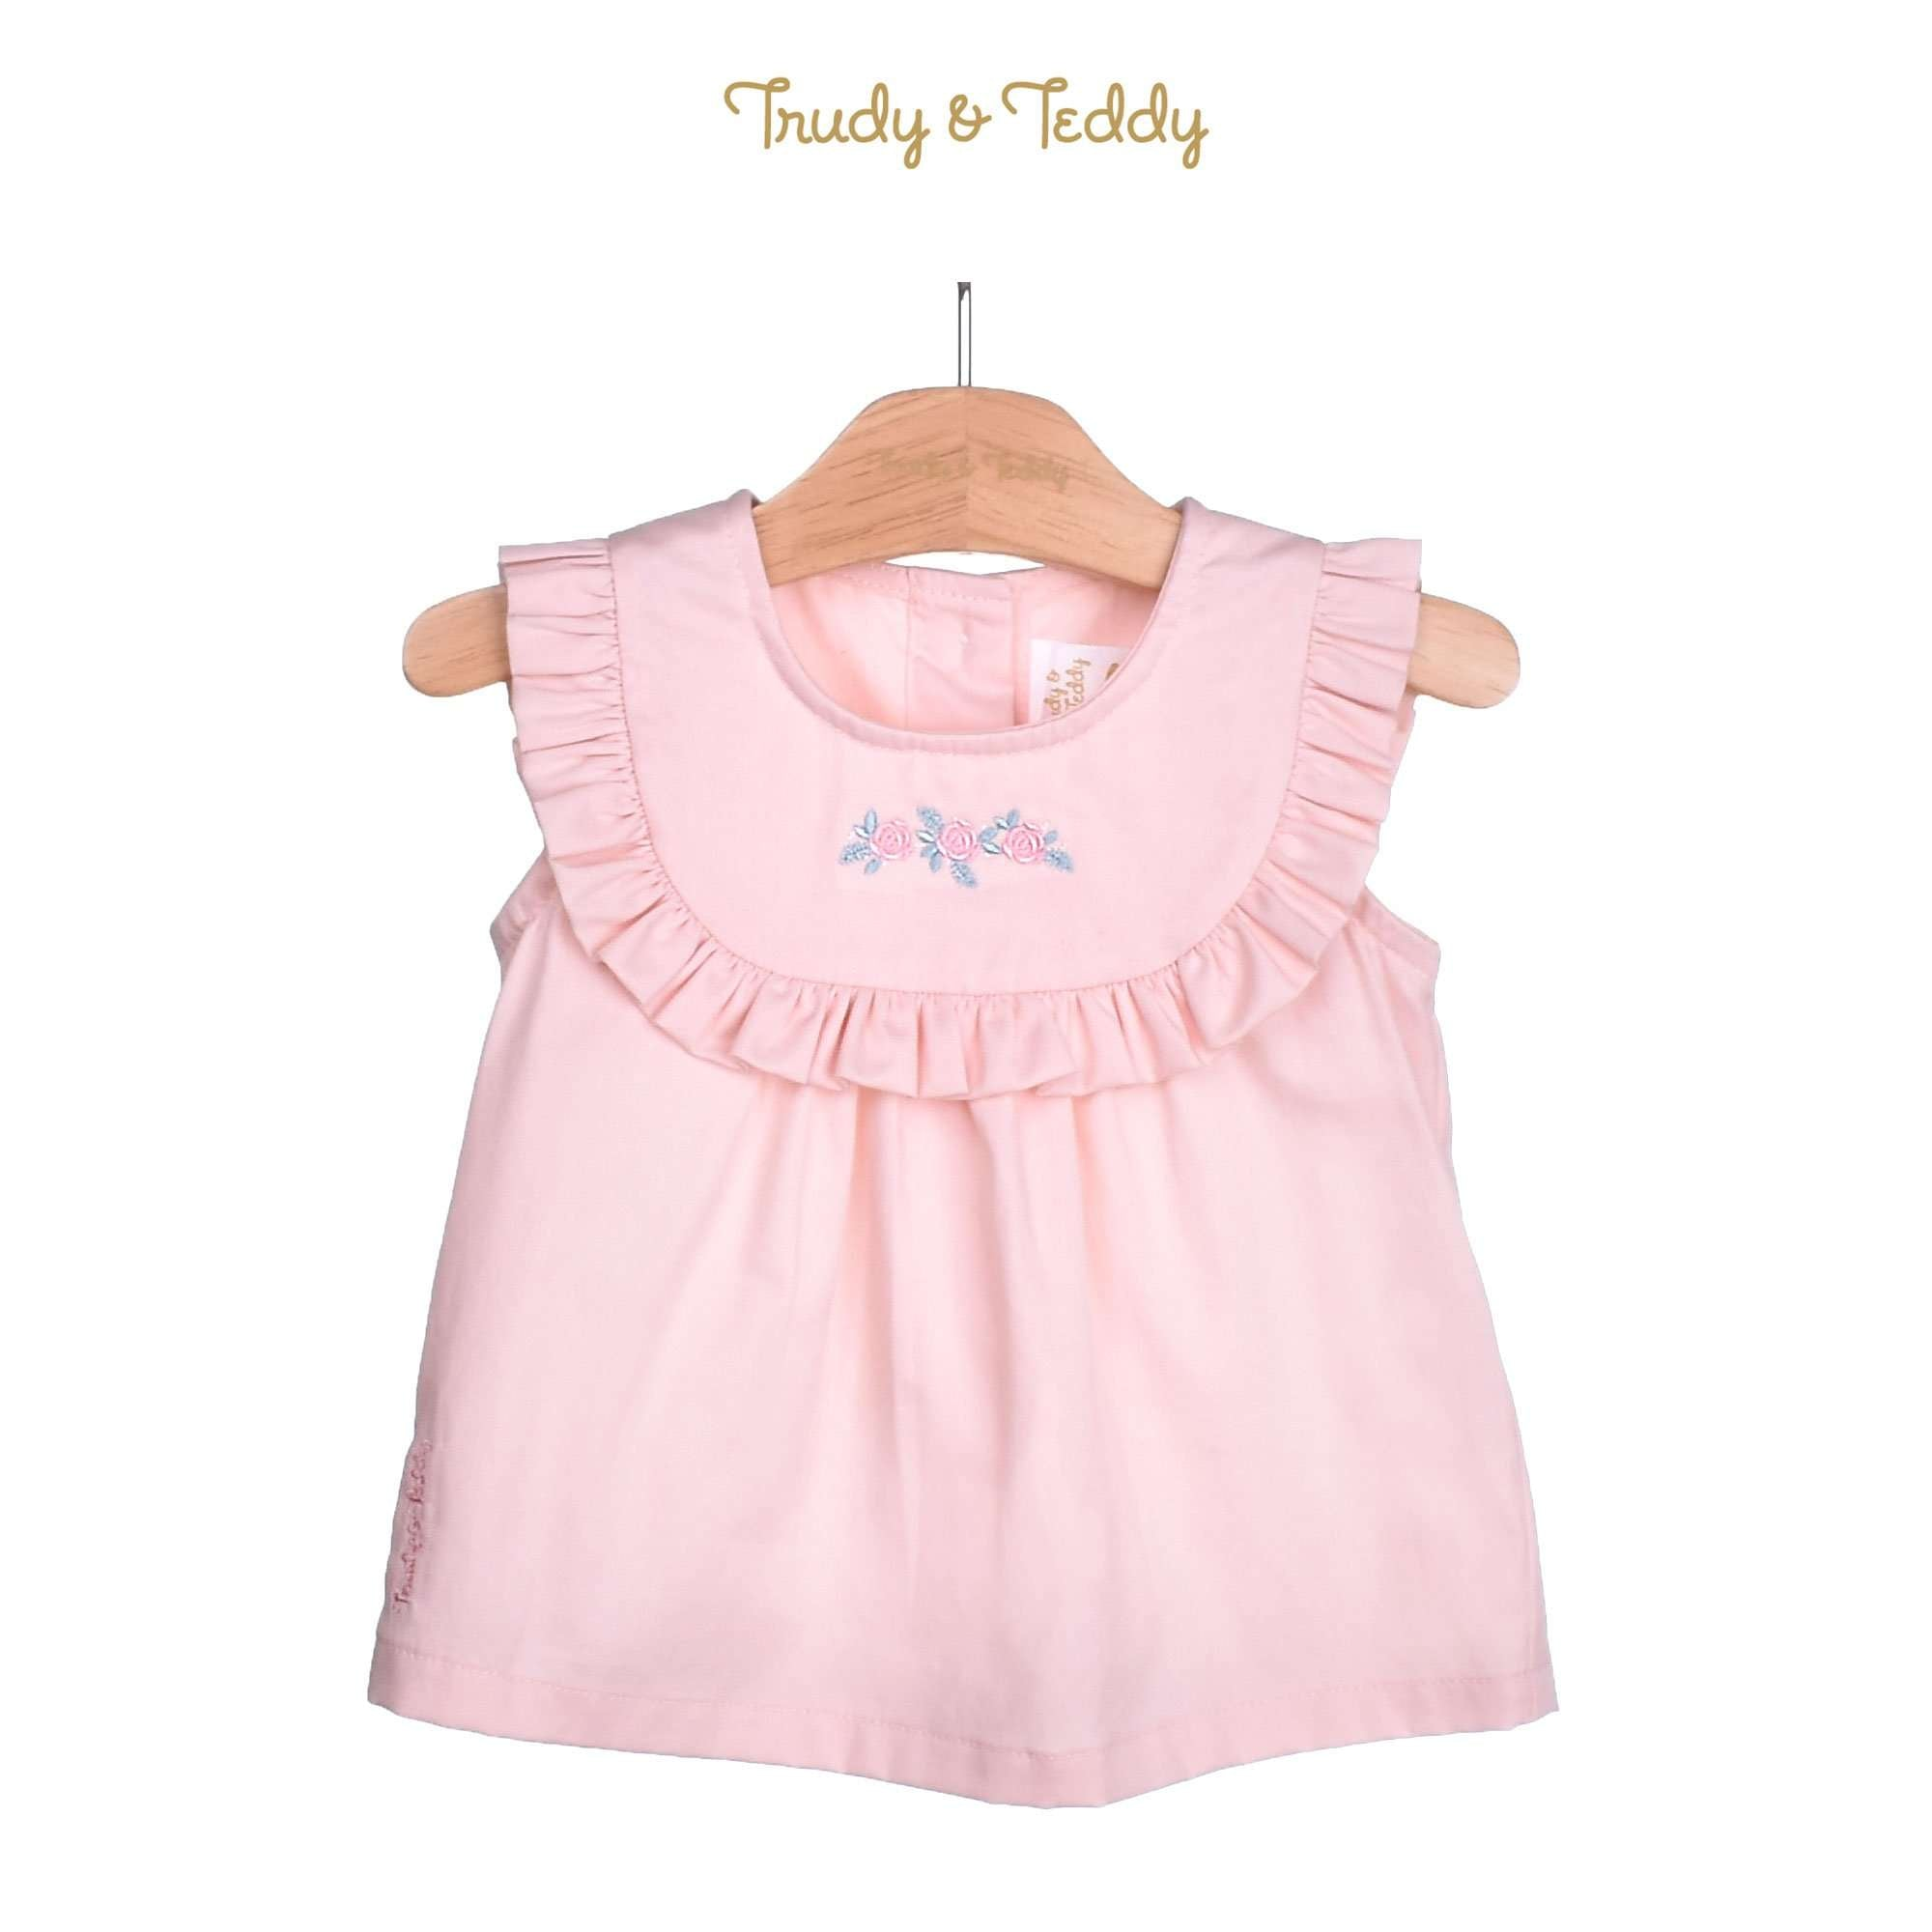 Trudy & Teddy Baby Girl Woven Sleeveless Blouse 810103-141 : Buy Trudy & Teddy online at CMG.MY